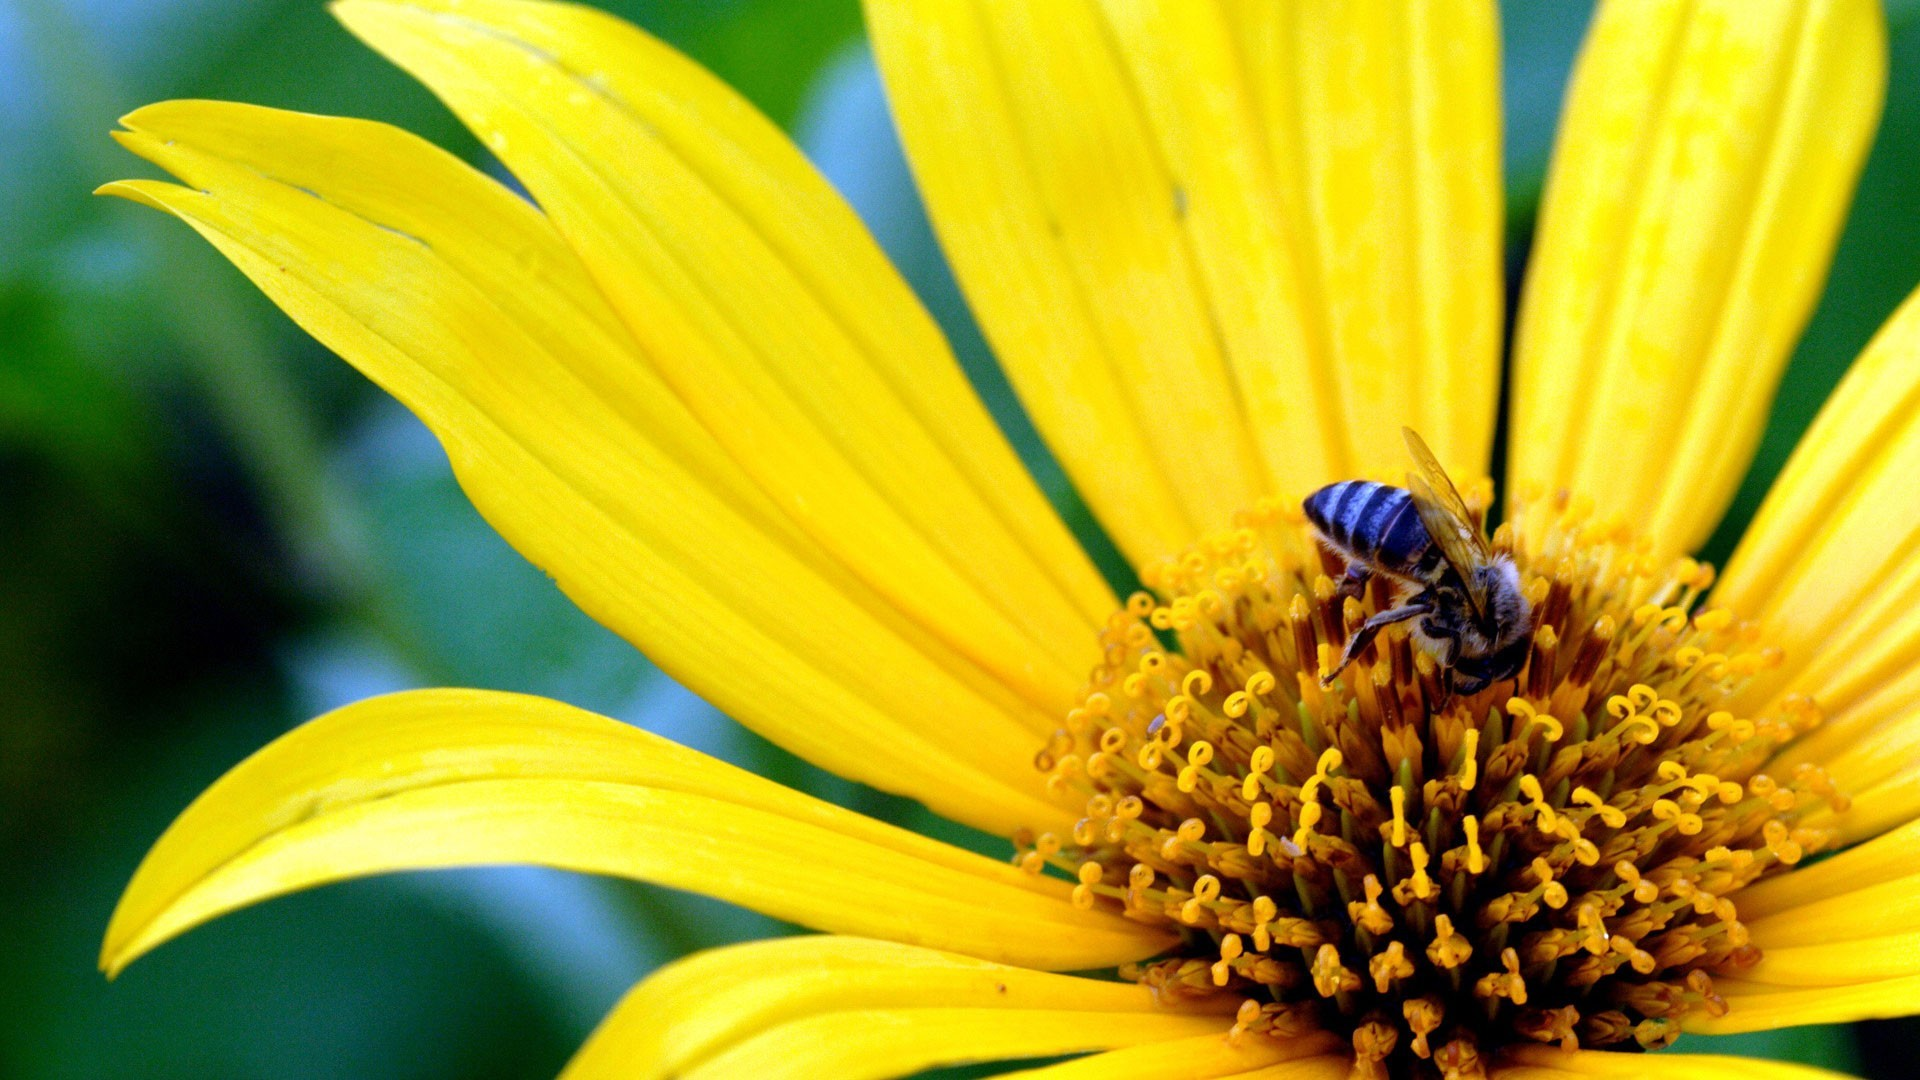 bees-flowers-yellow-yellow-flowers-1920x1080-1920×1080-wallpaper-wpc9002741